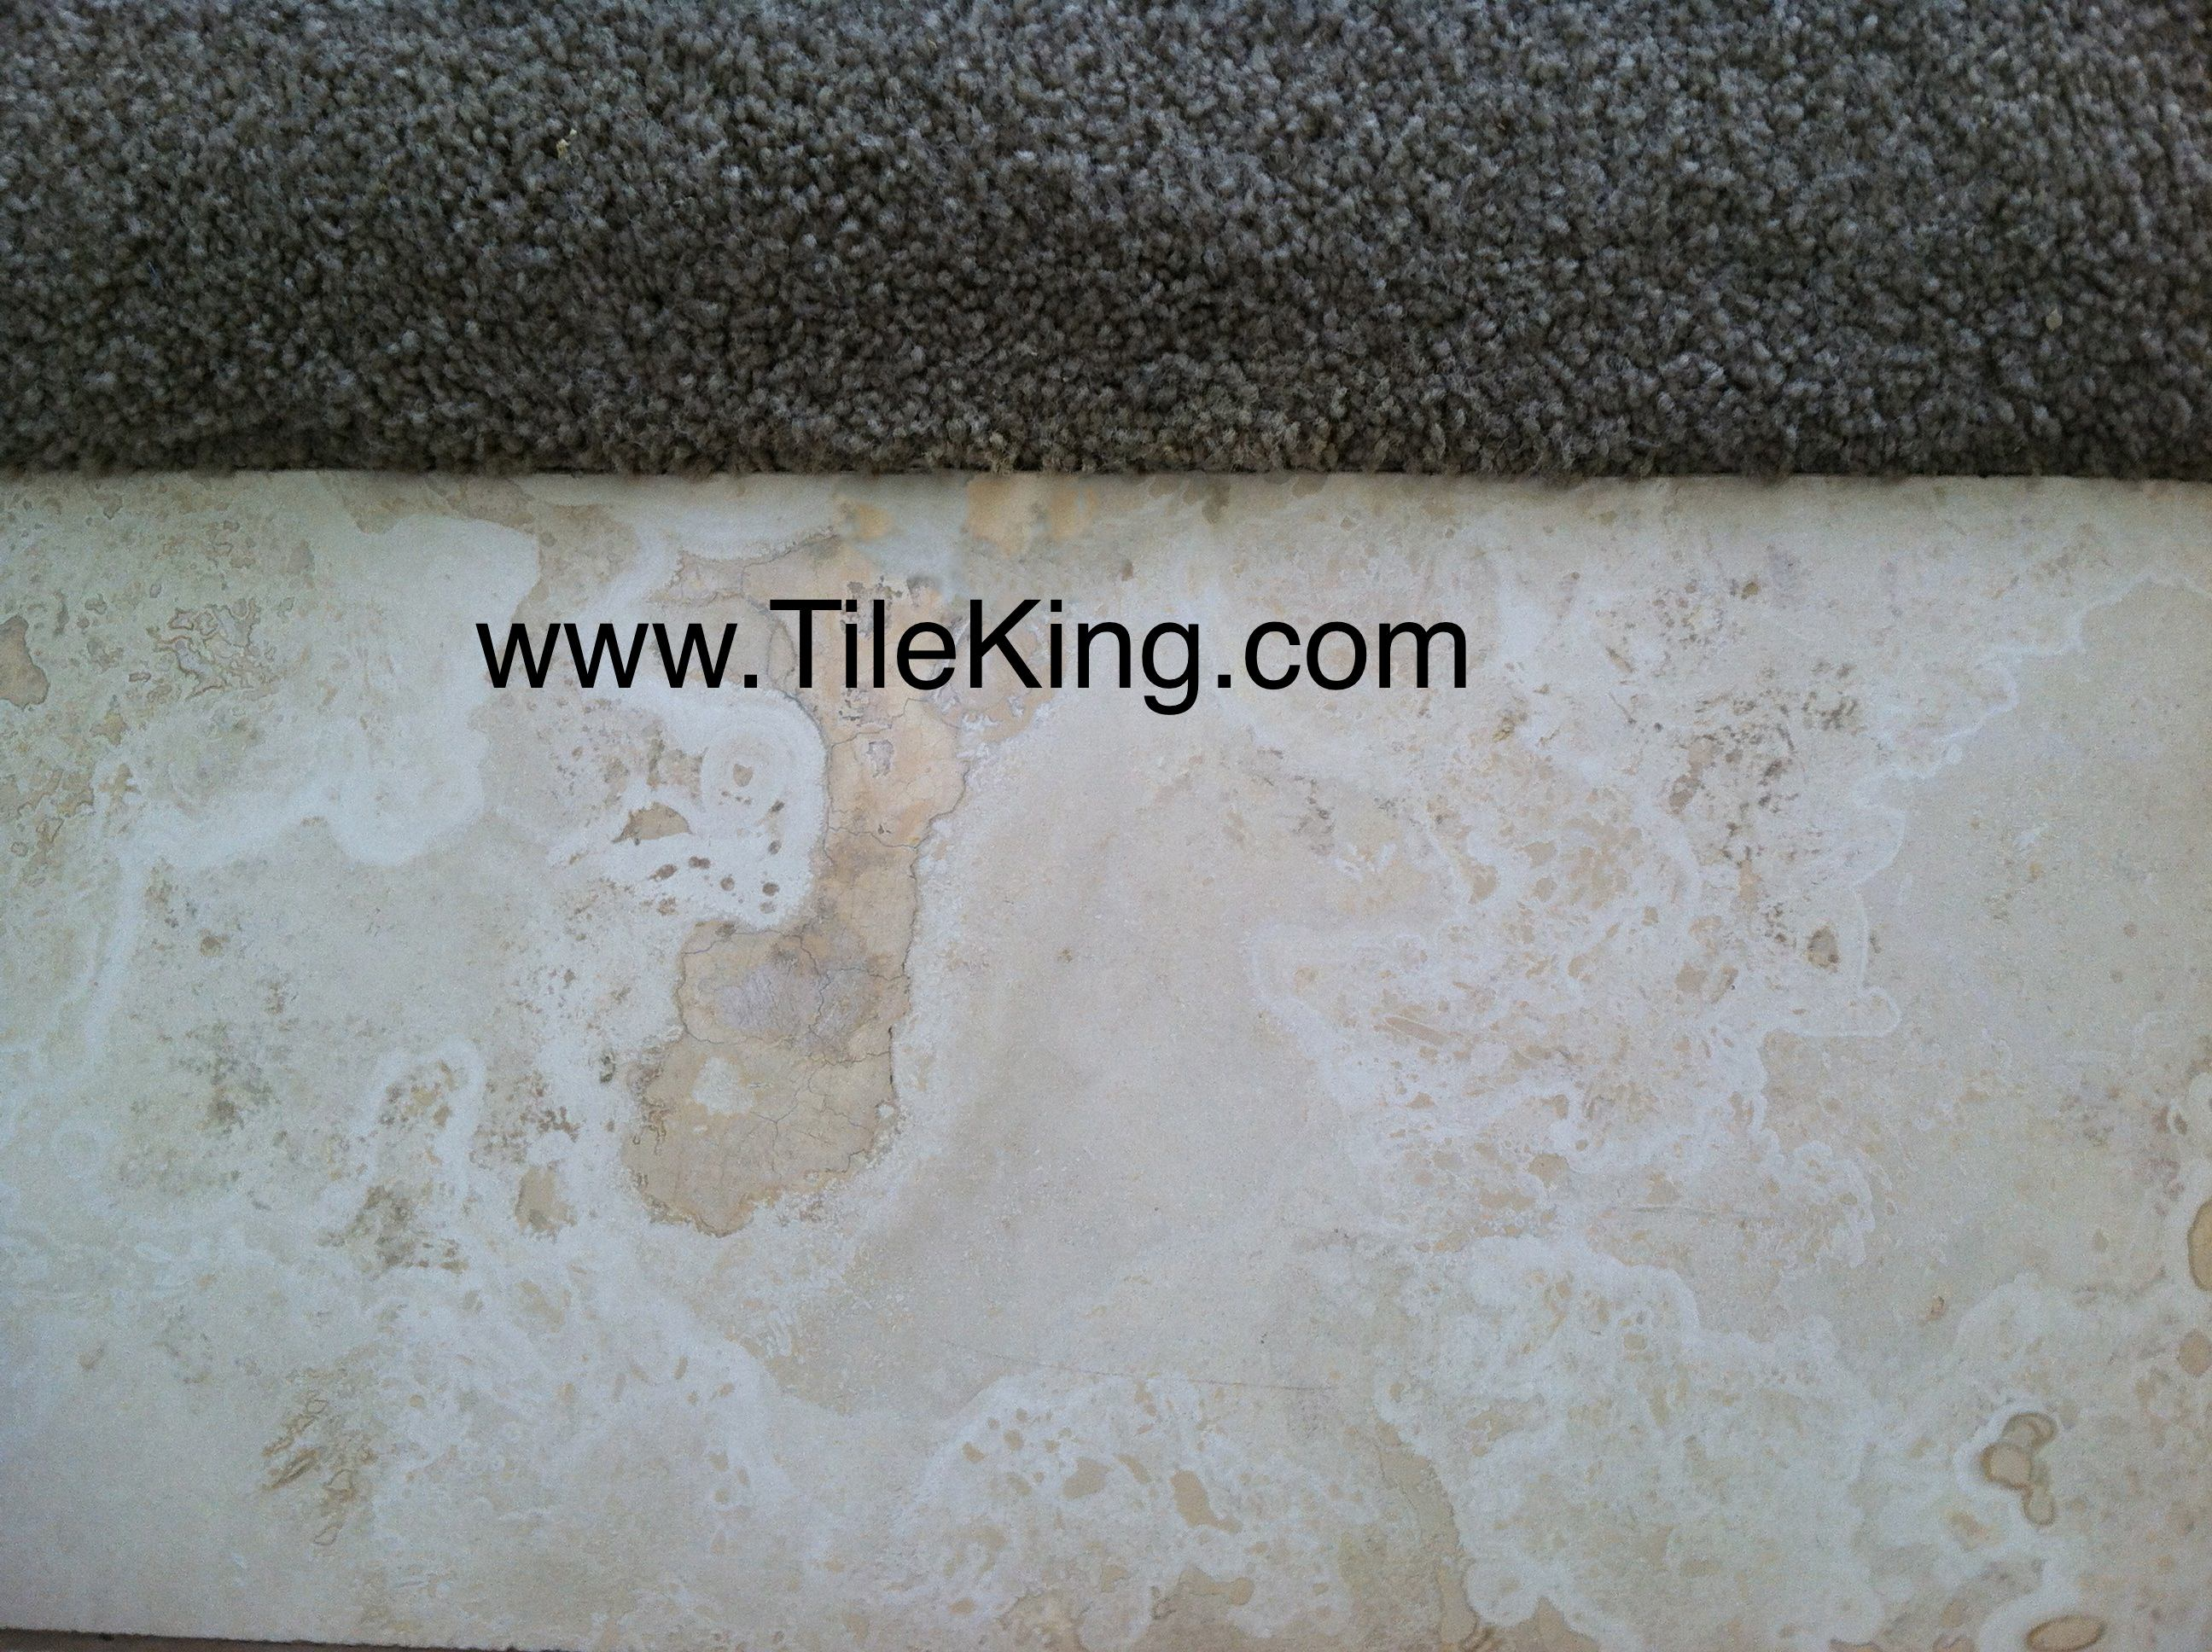 travertine cracked and broken after repairs